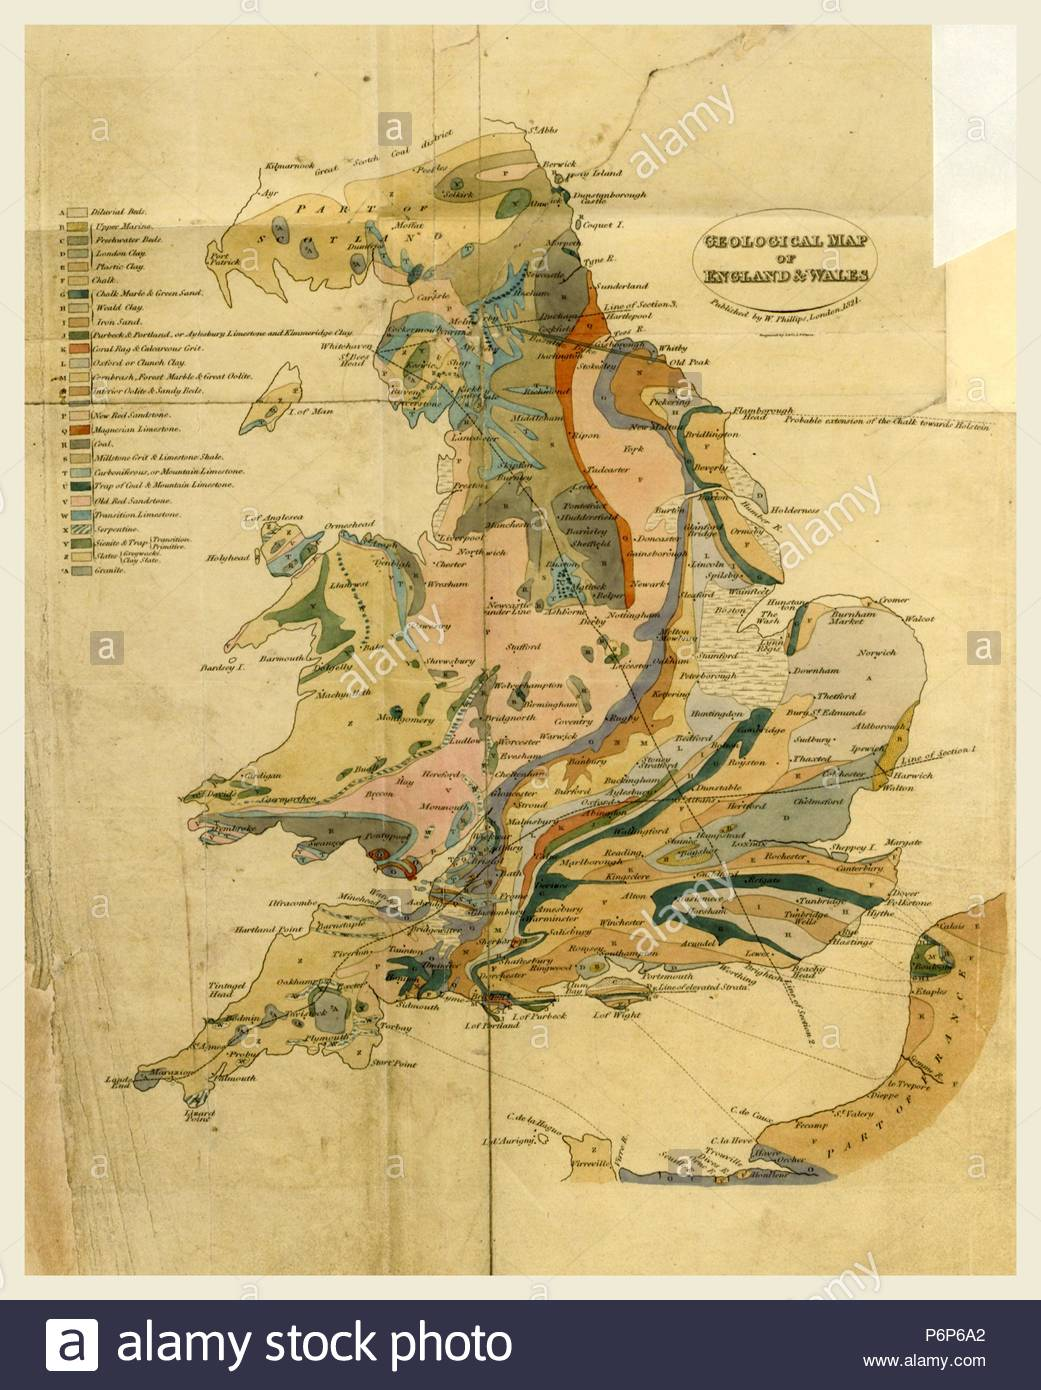 Outlines of the Geology of England and Wales, map, 19th century engraving. - Stock Image